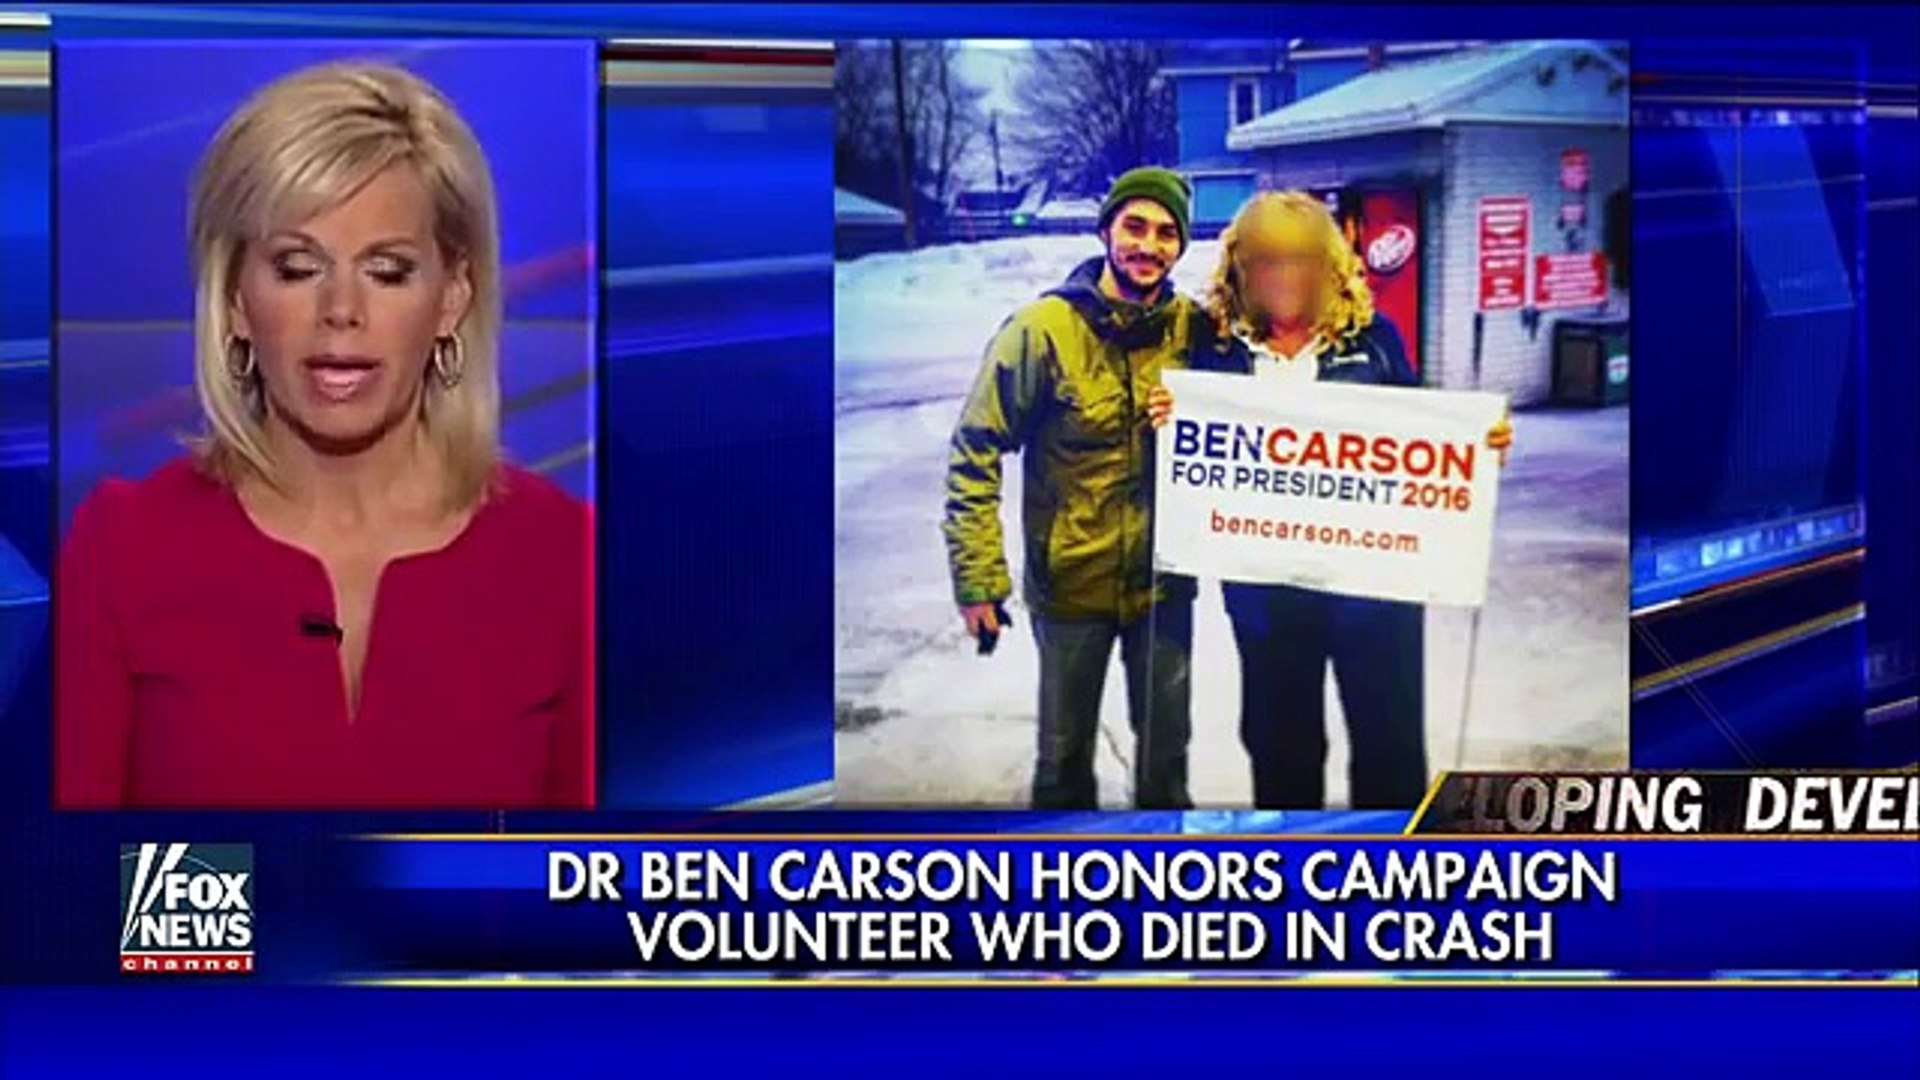 Dr. Ben Carson honors campaign volunteer who died in crash